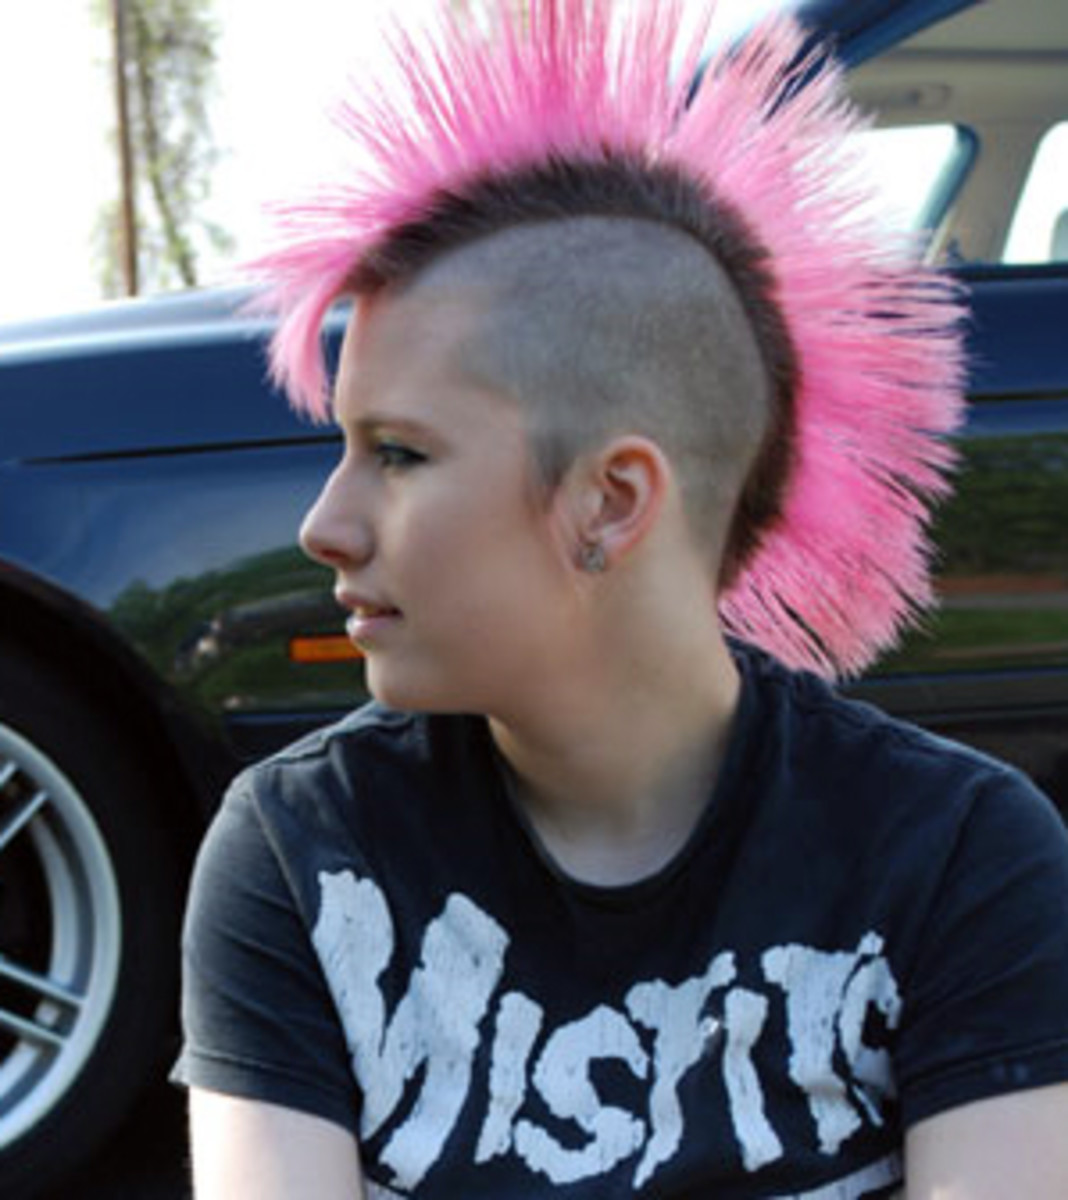 A more traditional (lol) punk rock mohawk.